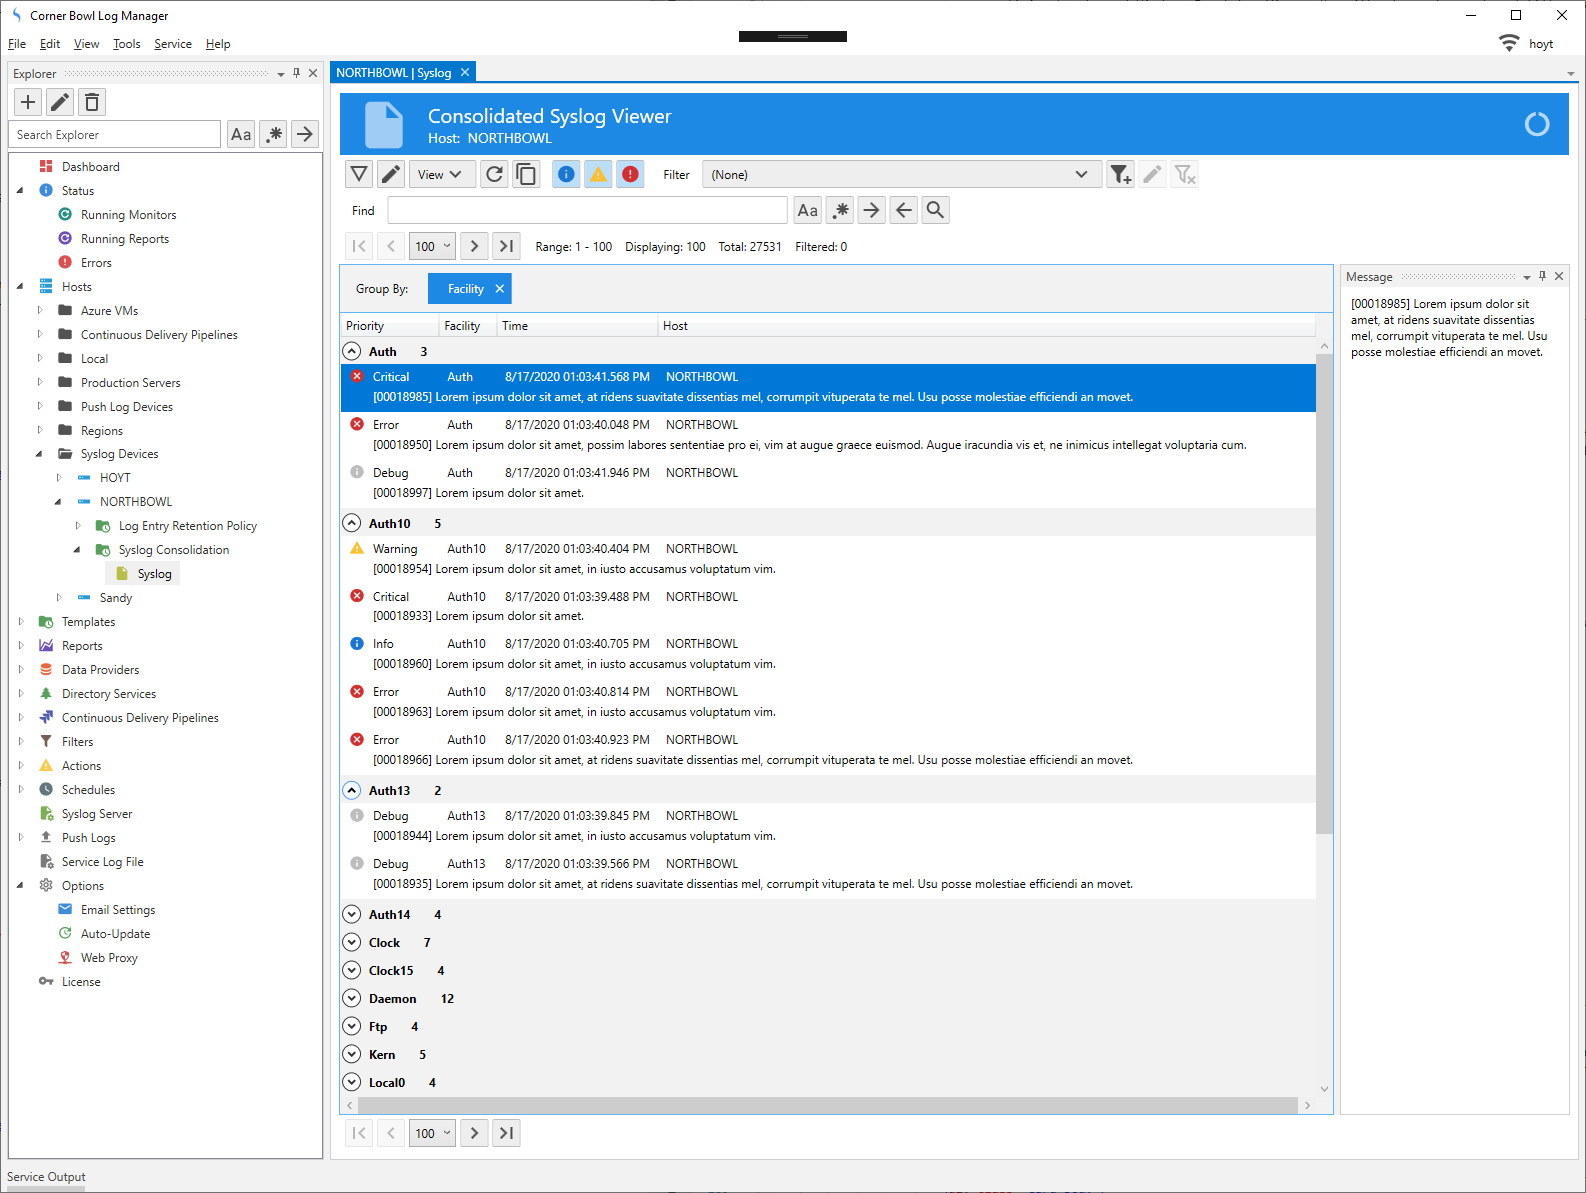 Consolidated Syslog Viewer